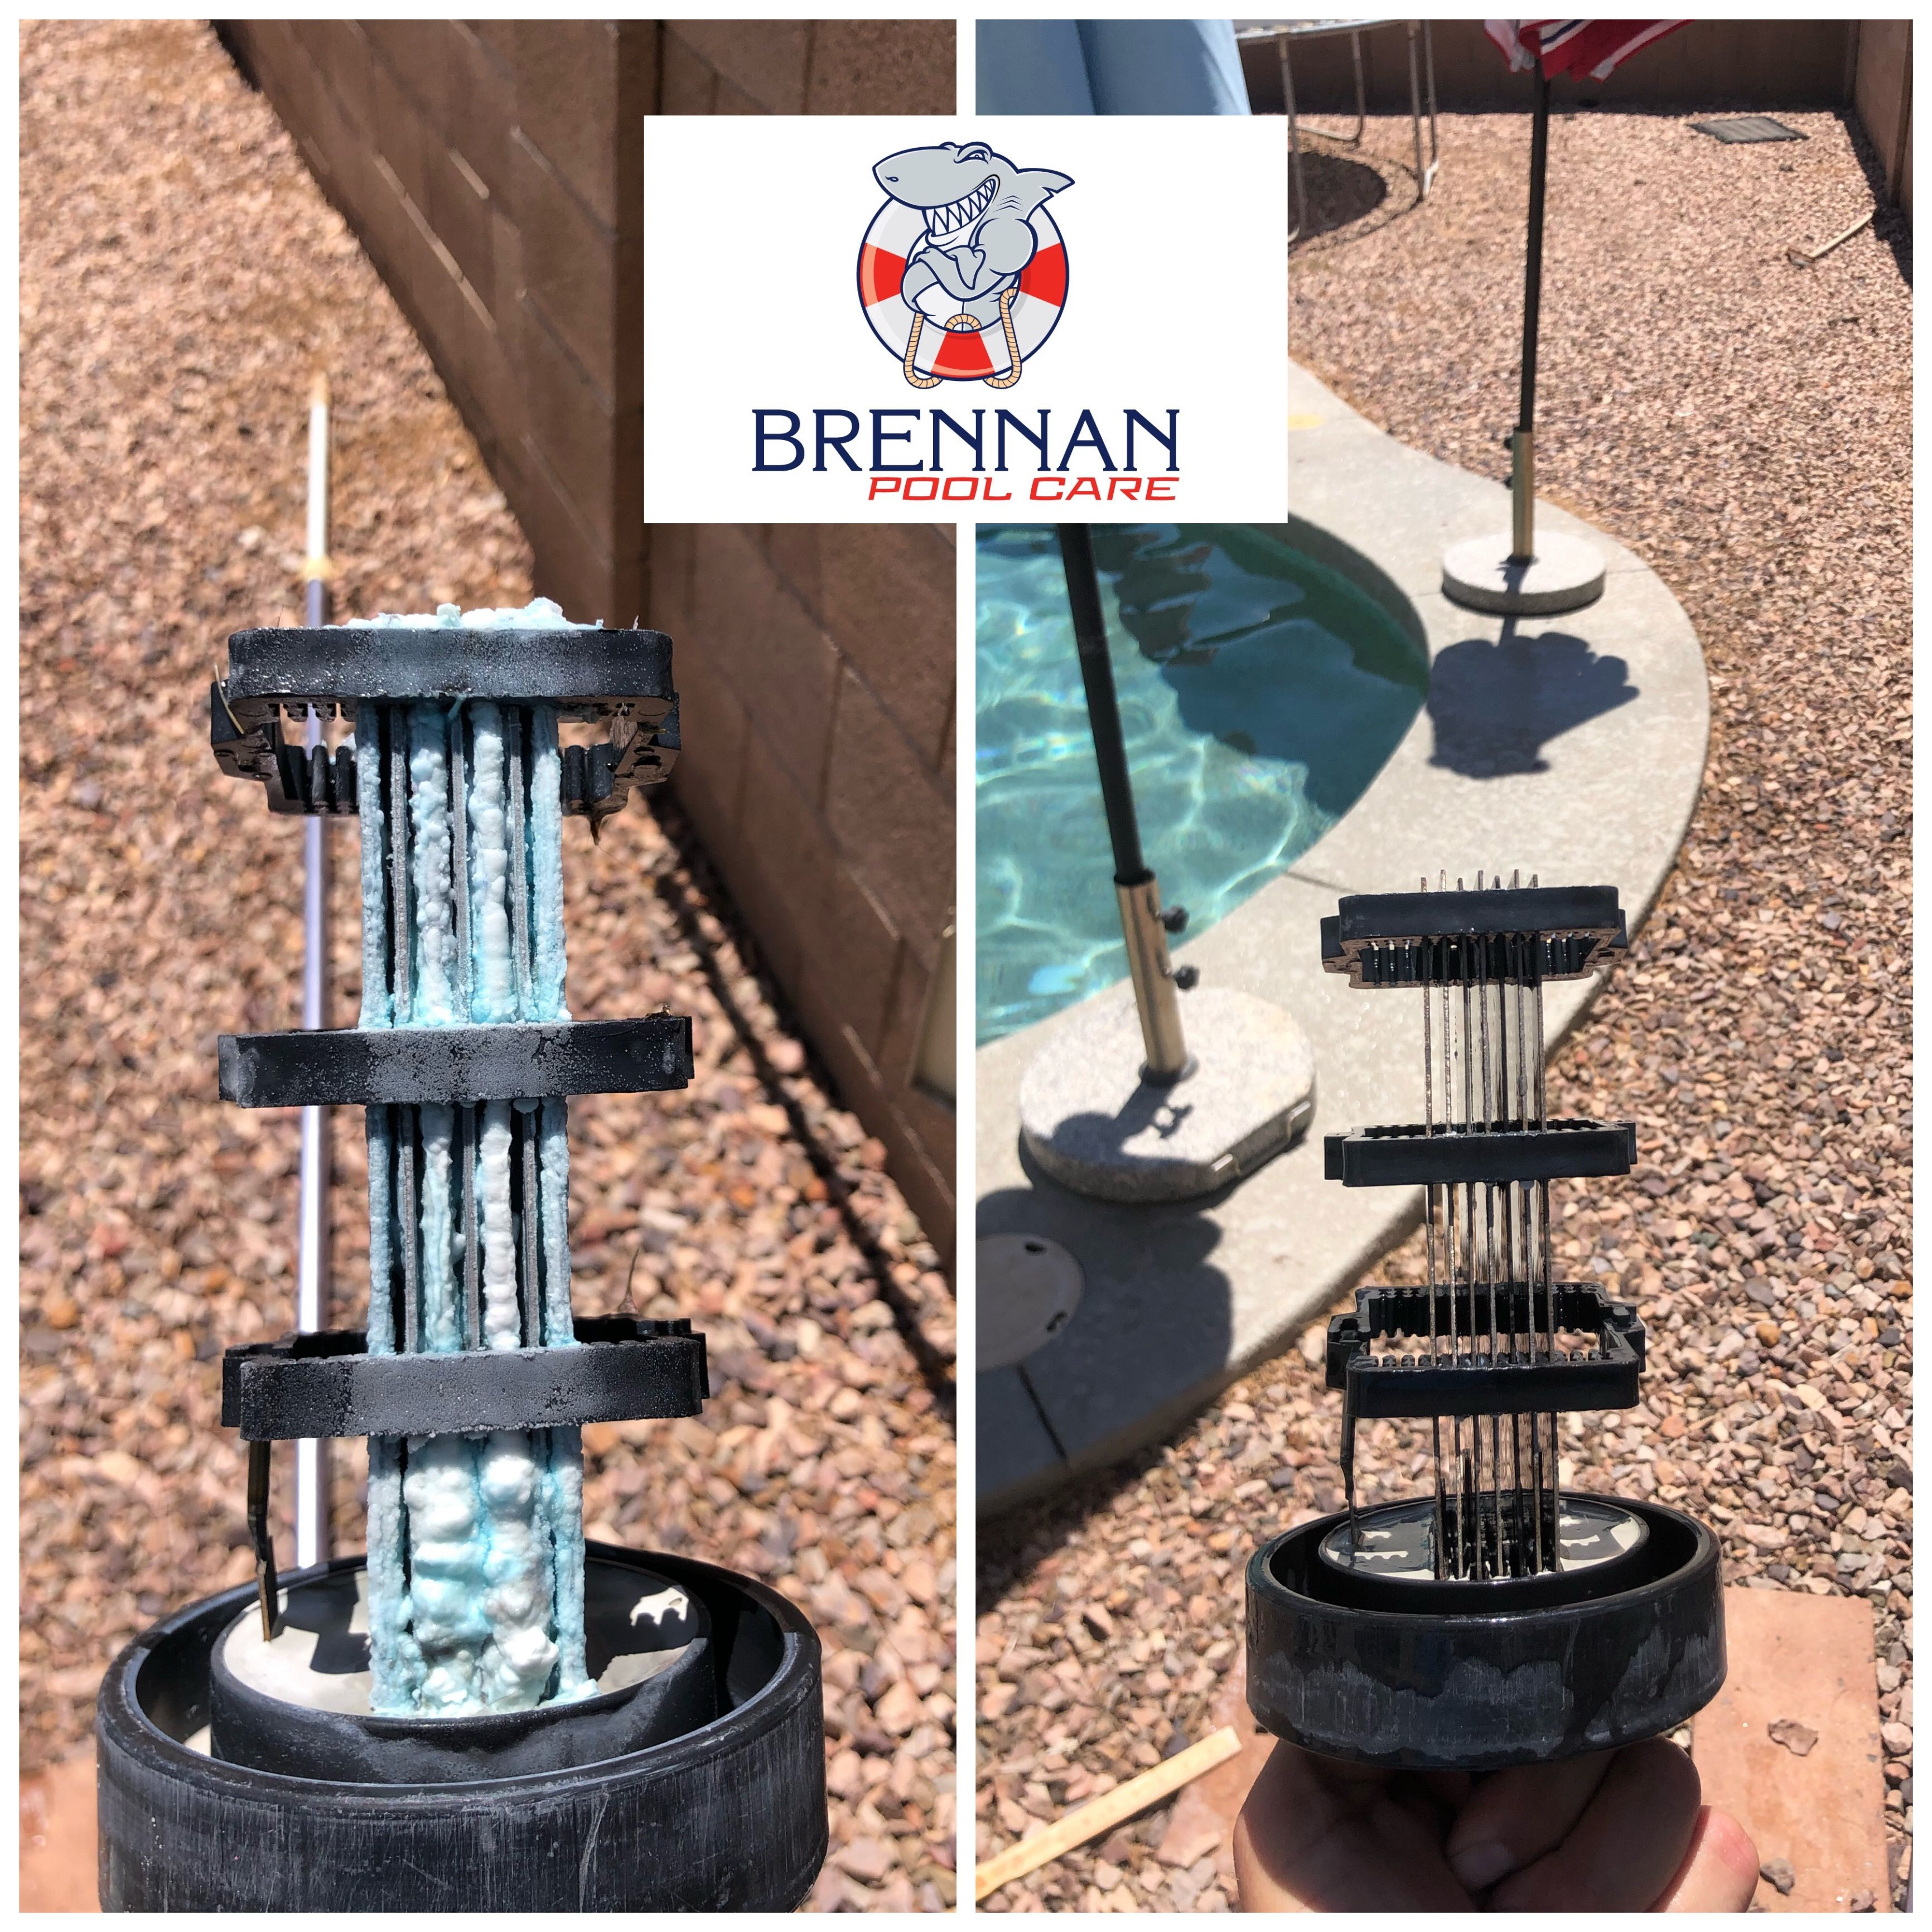 Brennanpoolcare pool care cleaning pool filters pool